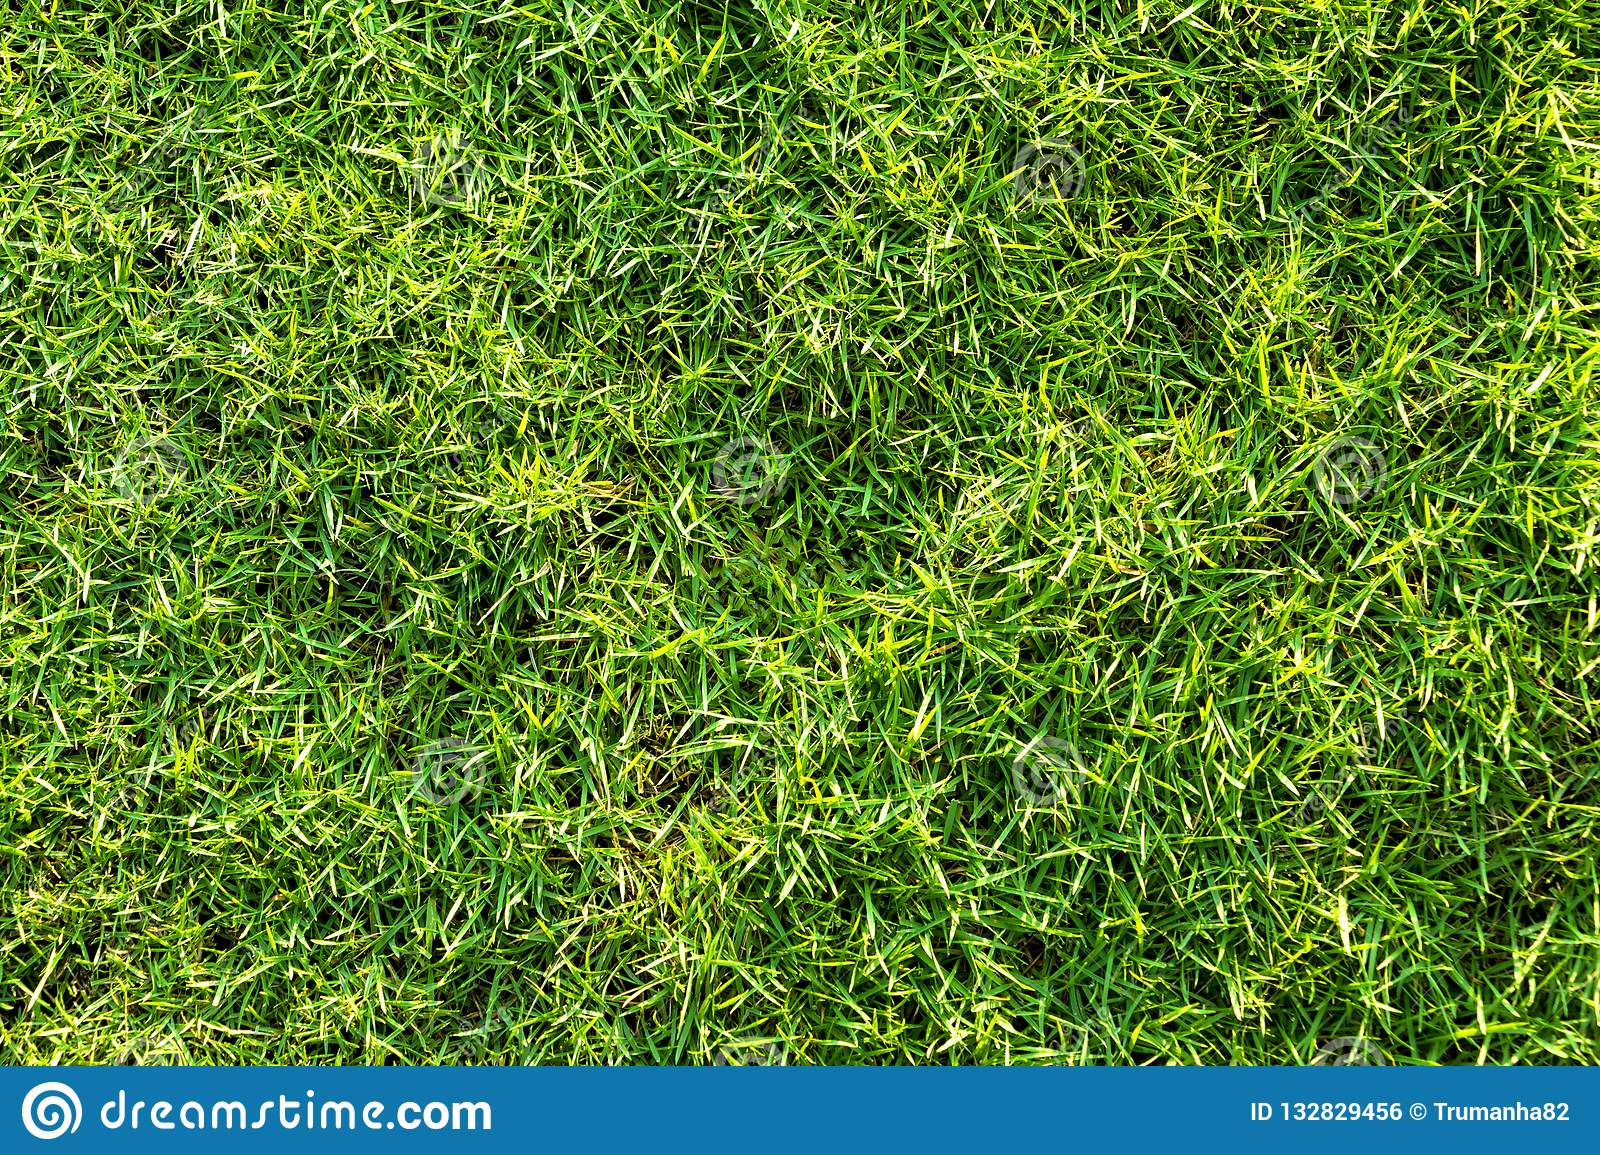 Green Grass Texture for A Natural Background